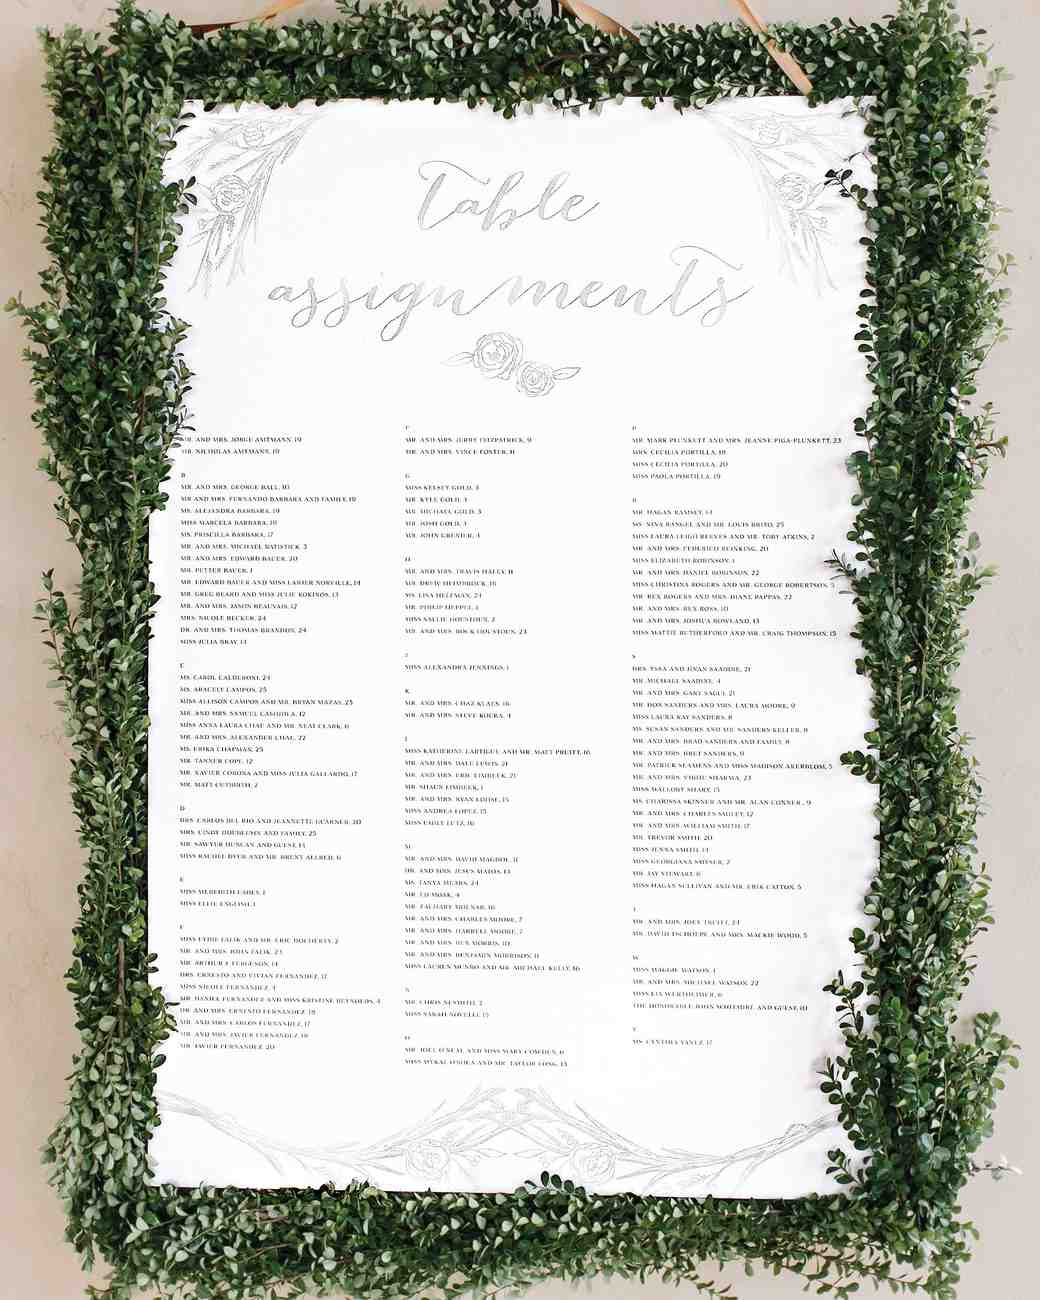 Rustic Wedding Seating Chart Ideas: 25 Unique Wedding Seating Charts To Guide Guests To Their